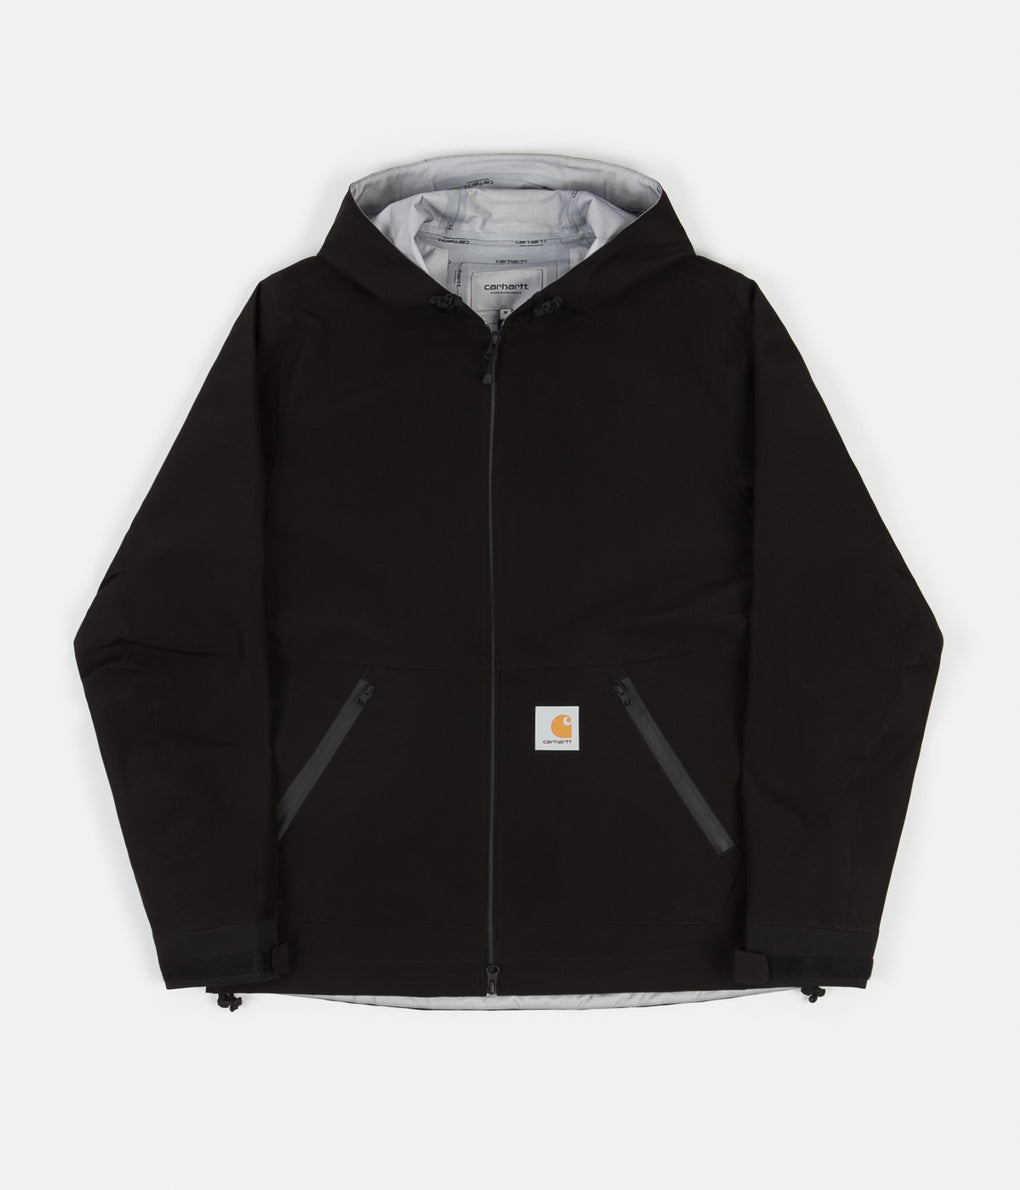 Carhartt Gore Tex Active Jacket - Black